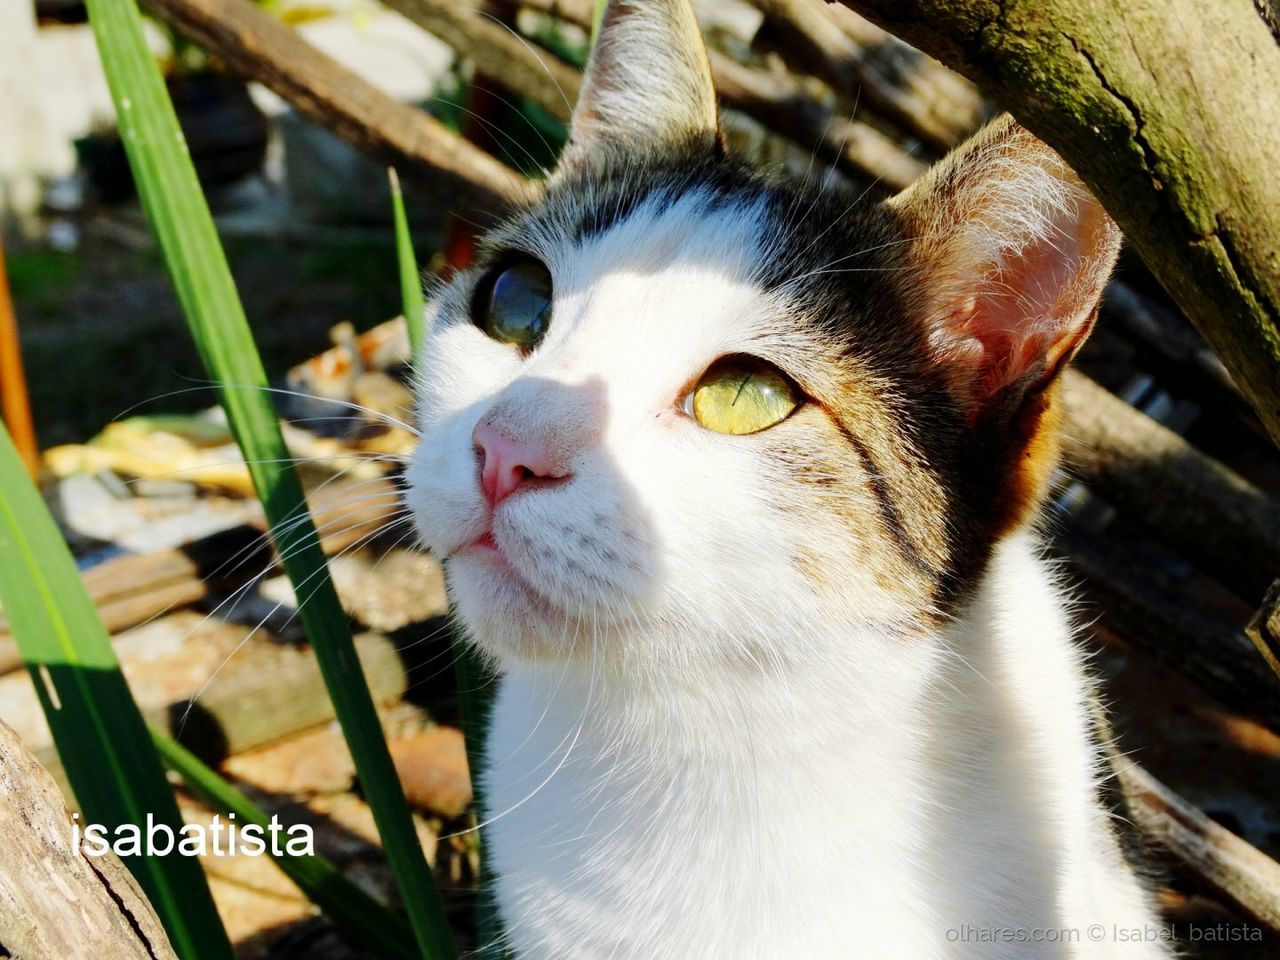 one animal, domestic cat, animal themes, pets, domestic animals, mammal, feline, no people, close-up, day, outdoors